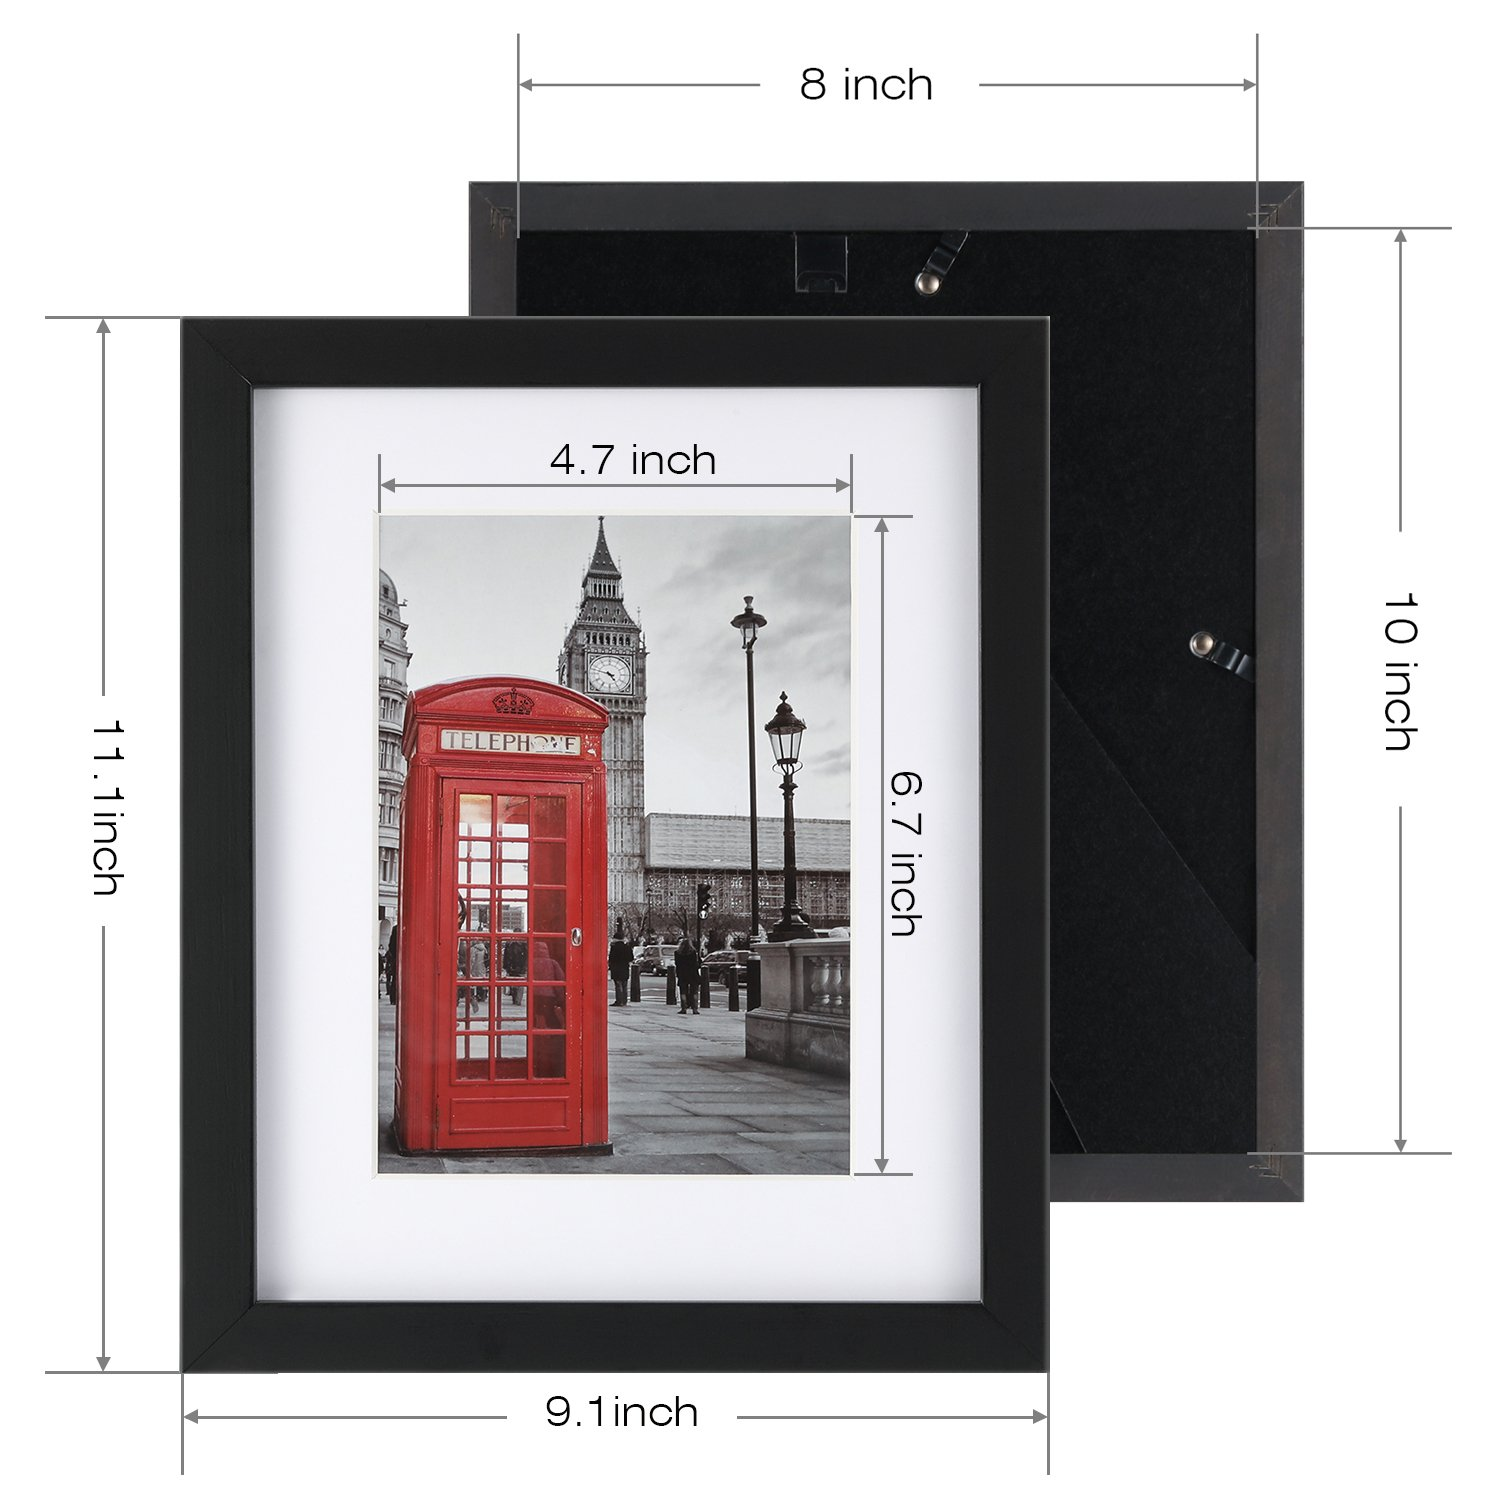 8x10 Picture Frame 1 Pack Tempering Glass with 2 Mats for 5x7 or 4x6 Documents, Wall Mounting Material Included (Black Frame)